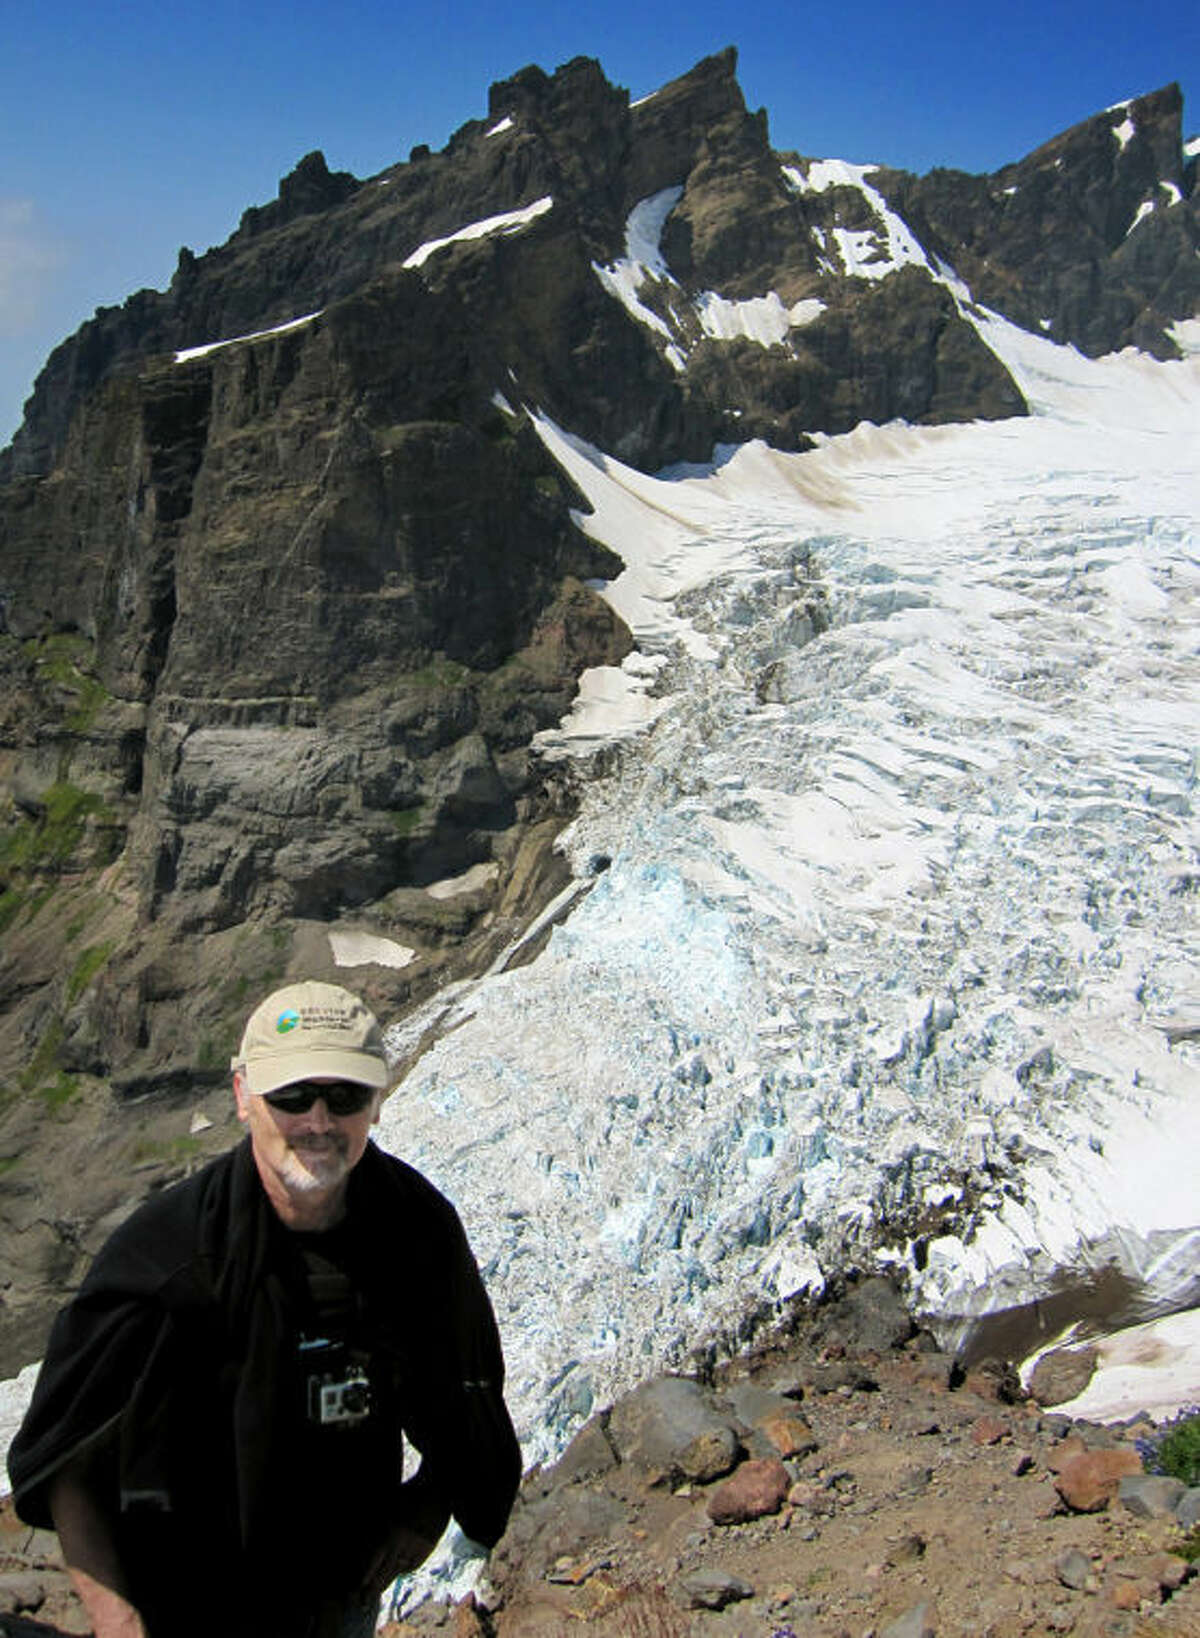 Photo providedPeter Sinclair is shown at the Easton Glacier on Mt. Baker, Cascades Range, in August 2012.